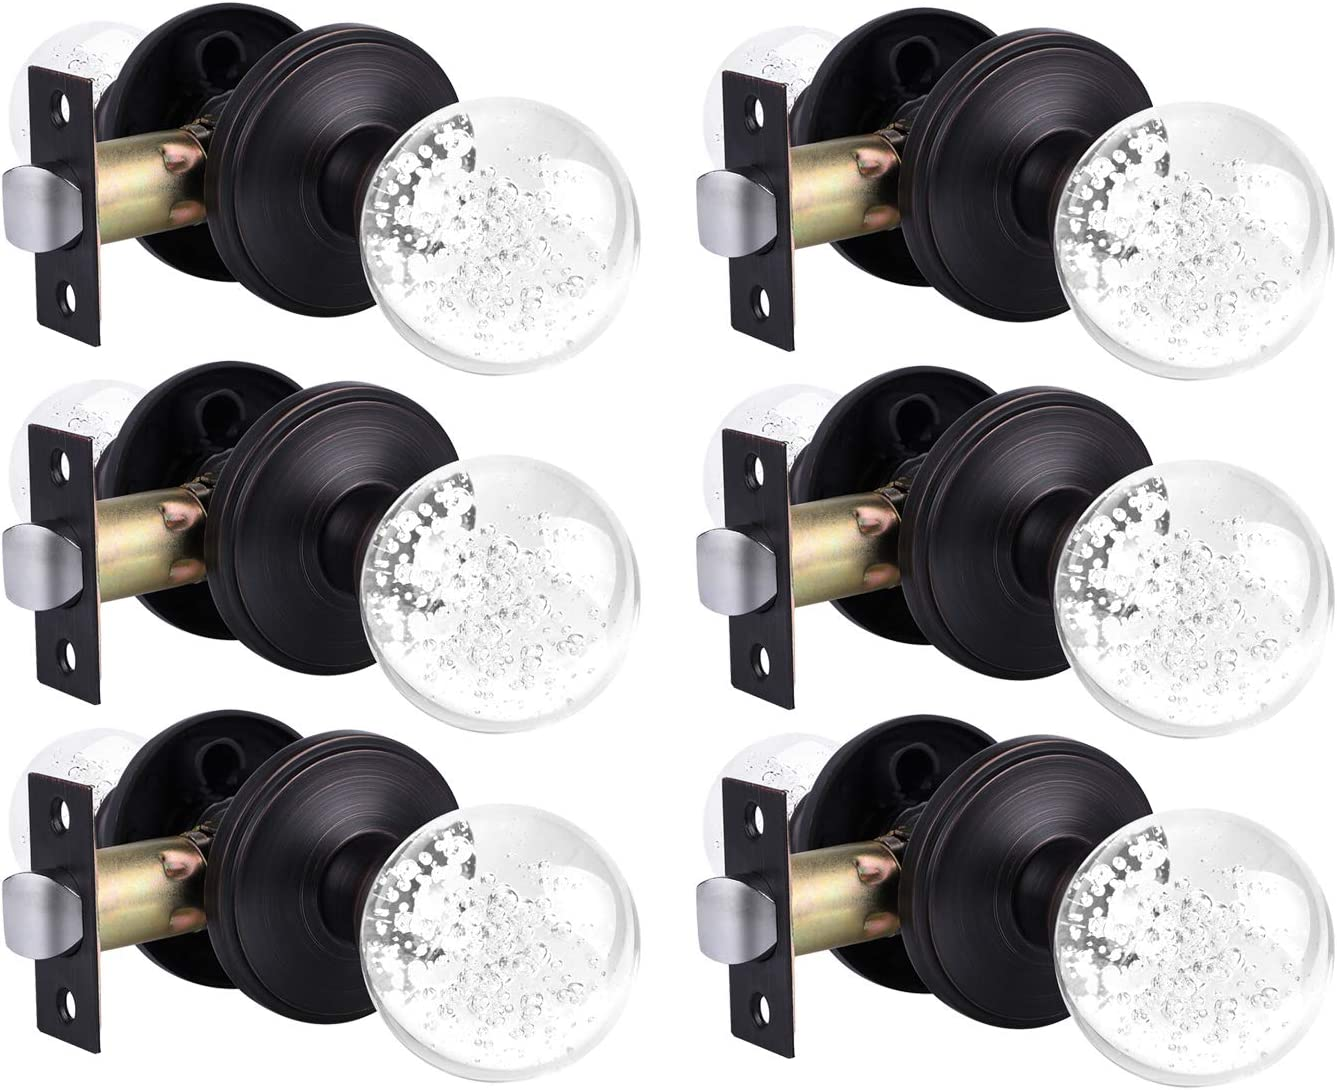 KNOBWELL Passage Door Knob Without Glass Rubbed Oil San Antonio Mall Kn Limited Special Price Lock